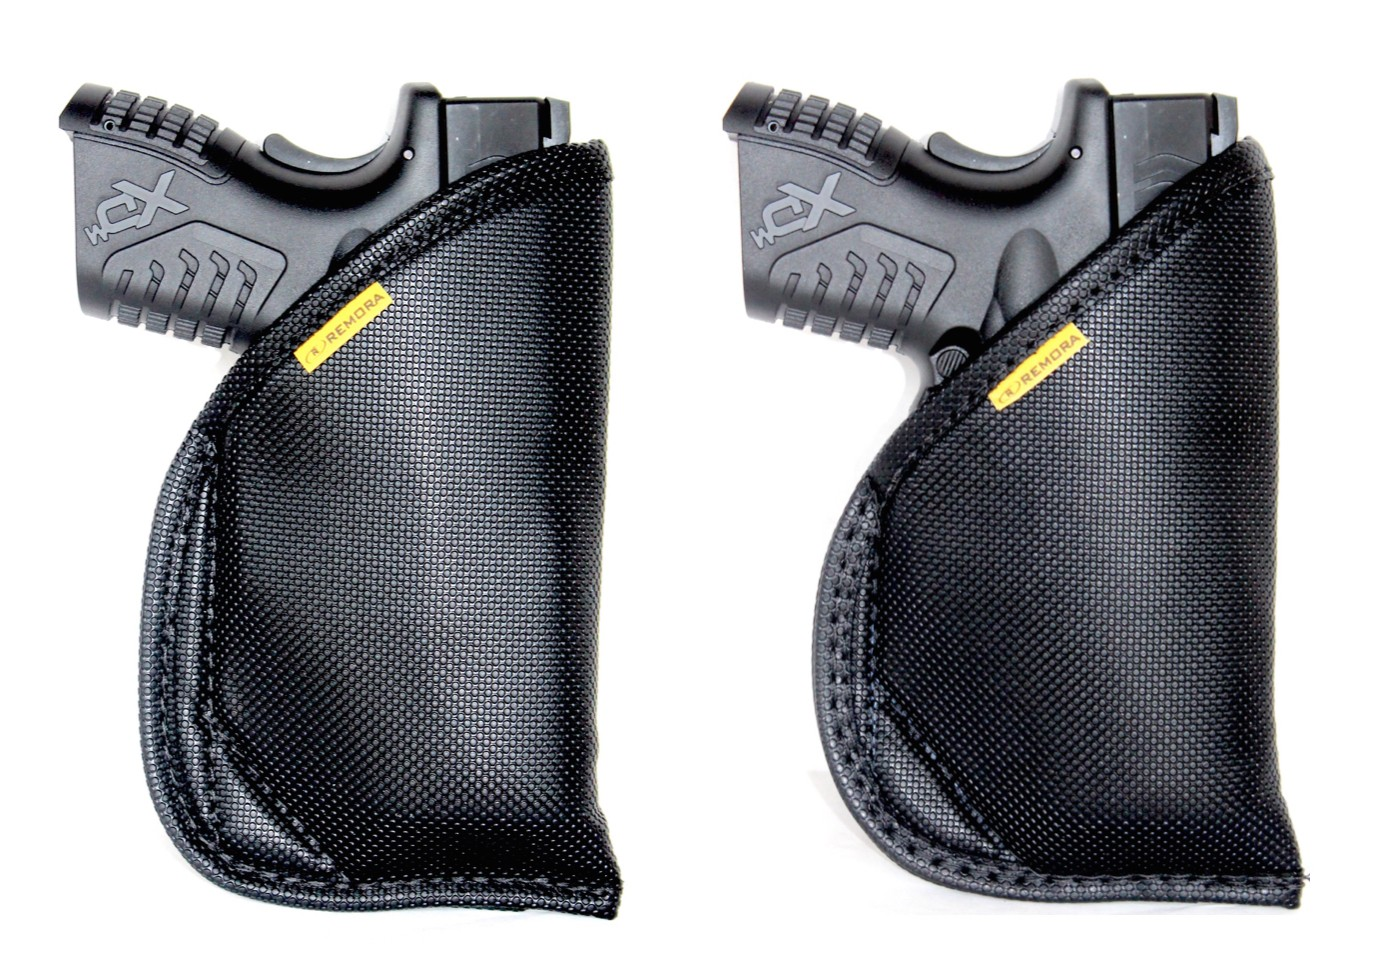 Inside the waistband holster standard IWB cut vs Artemis Cut (lower profile for a better master grip).